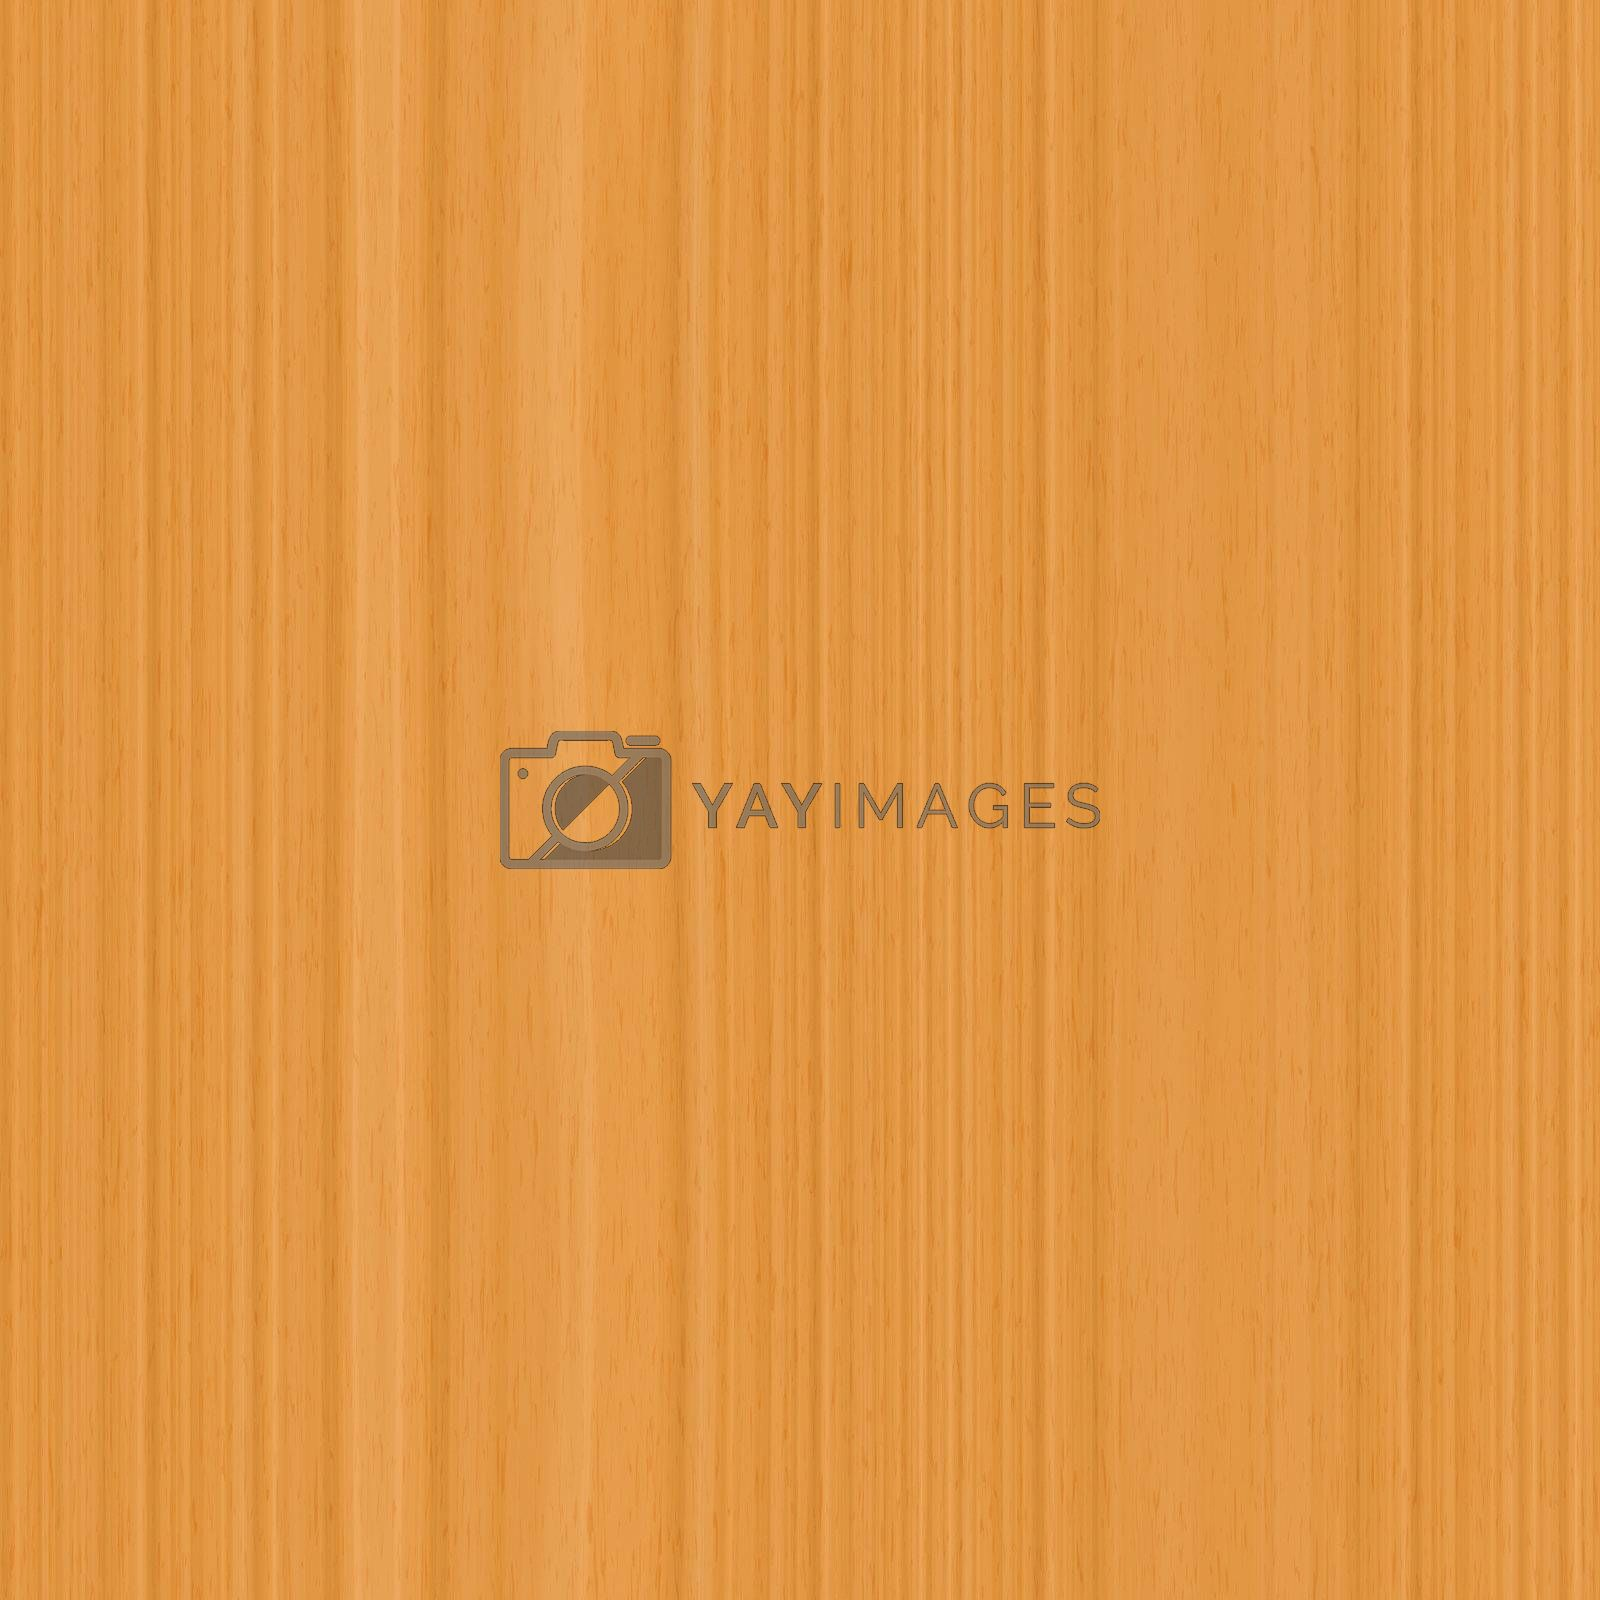 photorealistic wood veneer, will tile seamlessly as a pattern